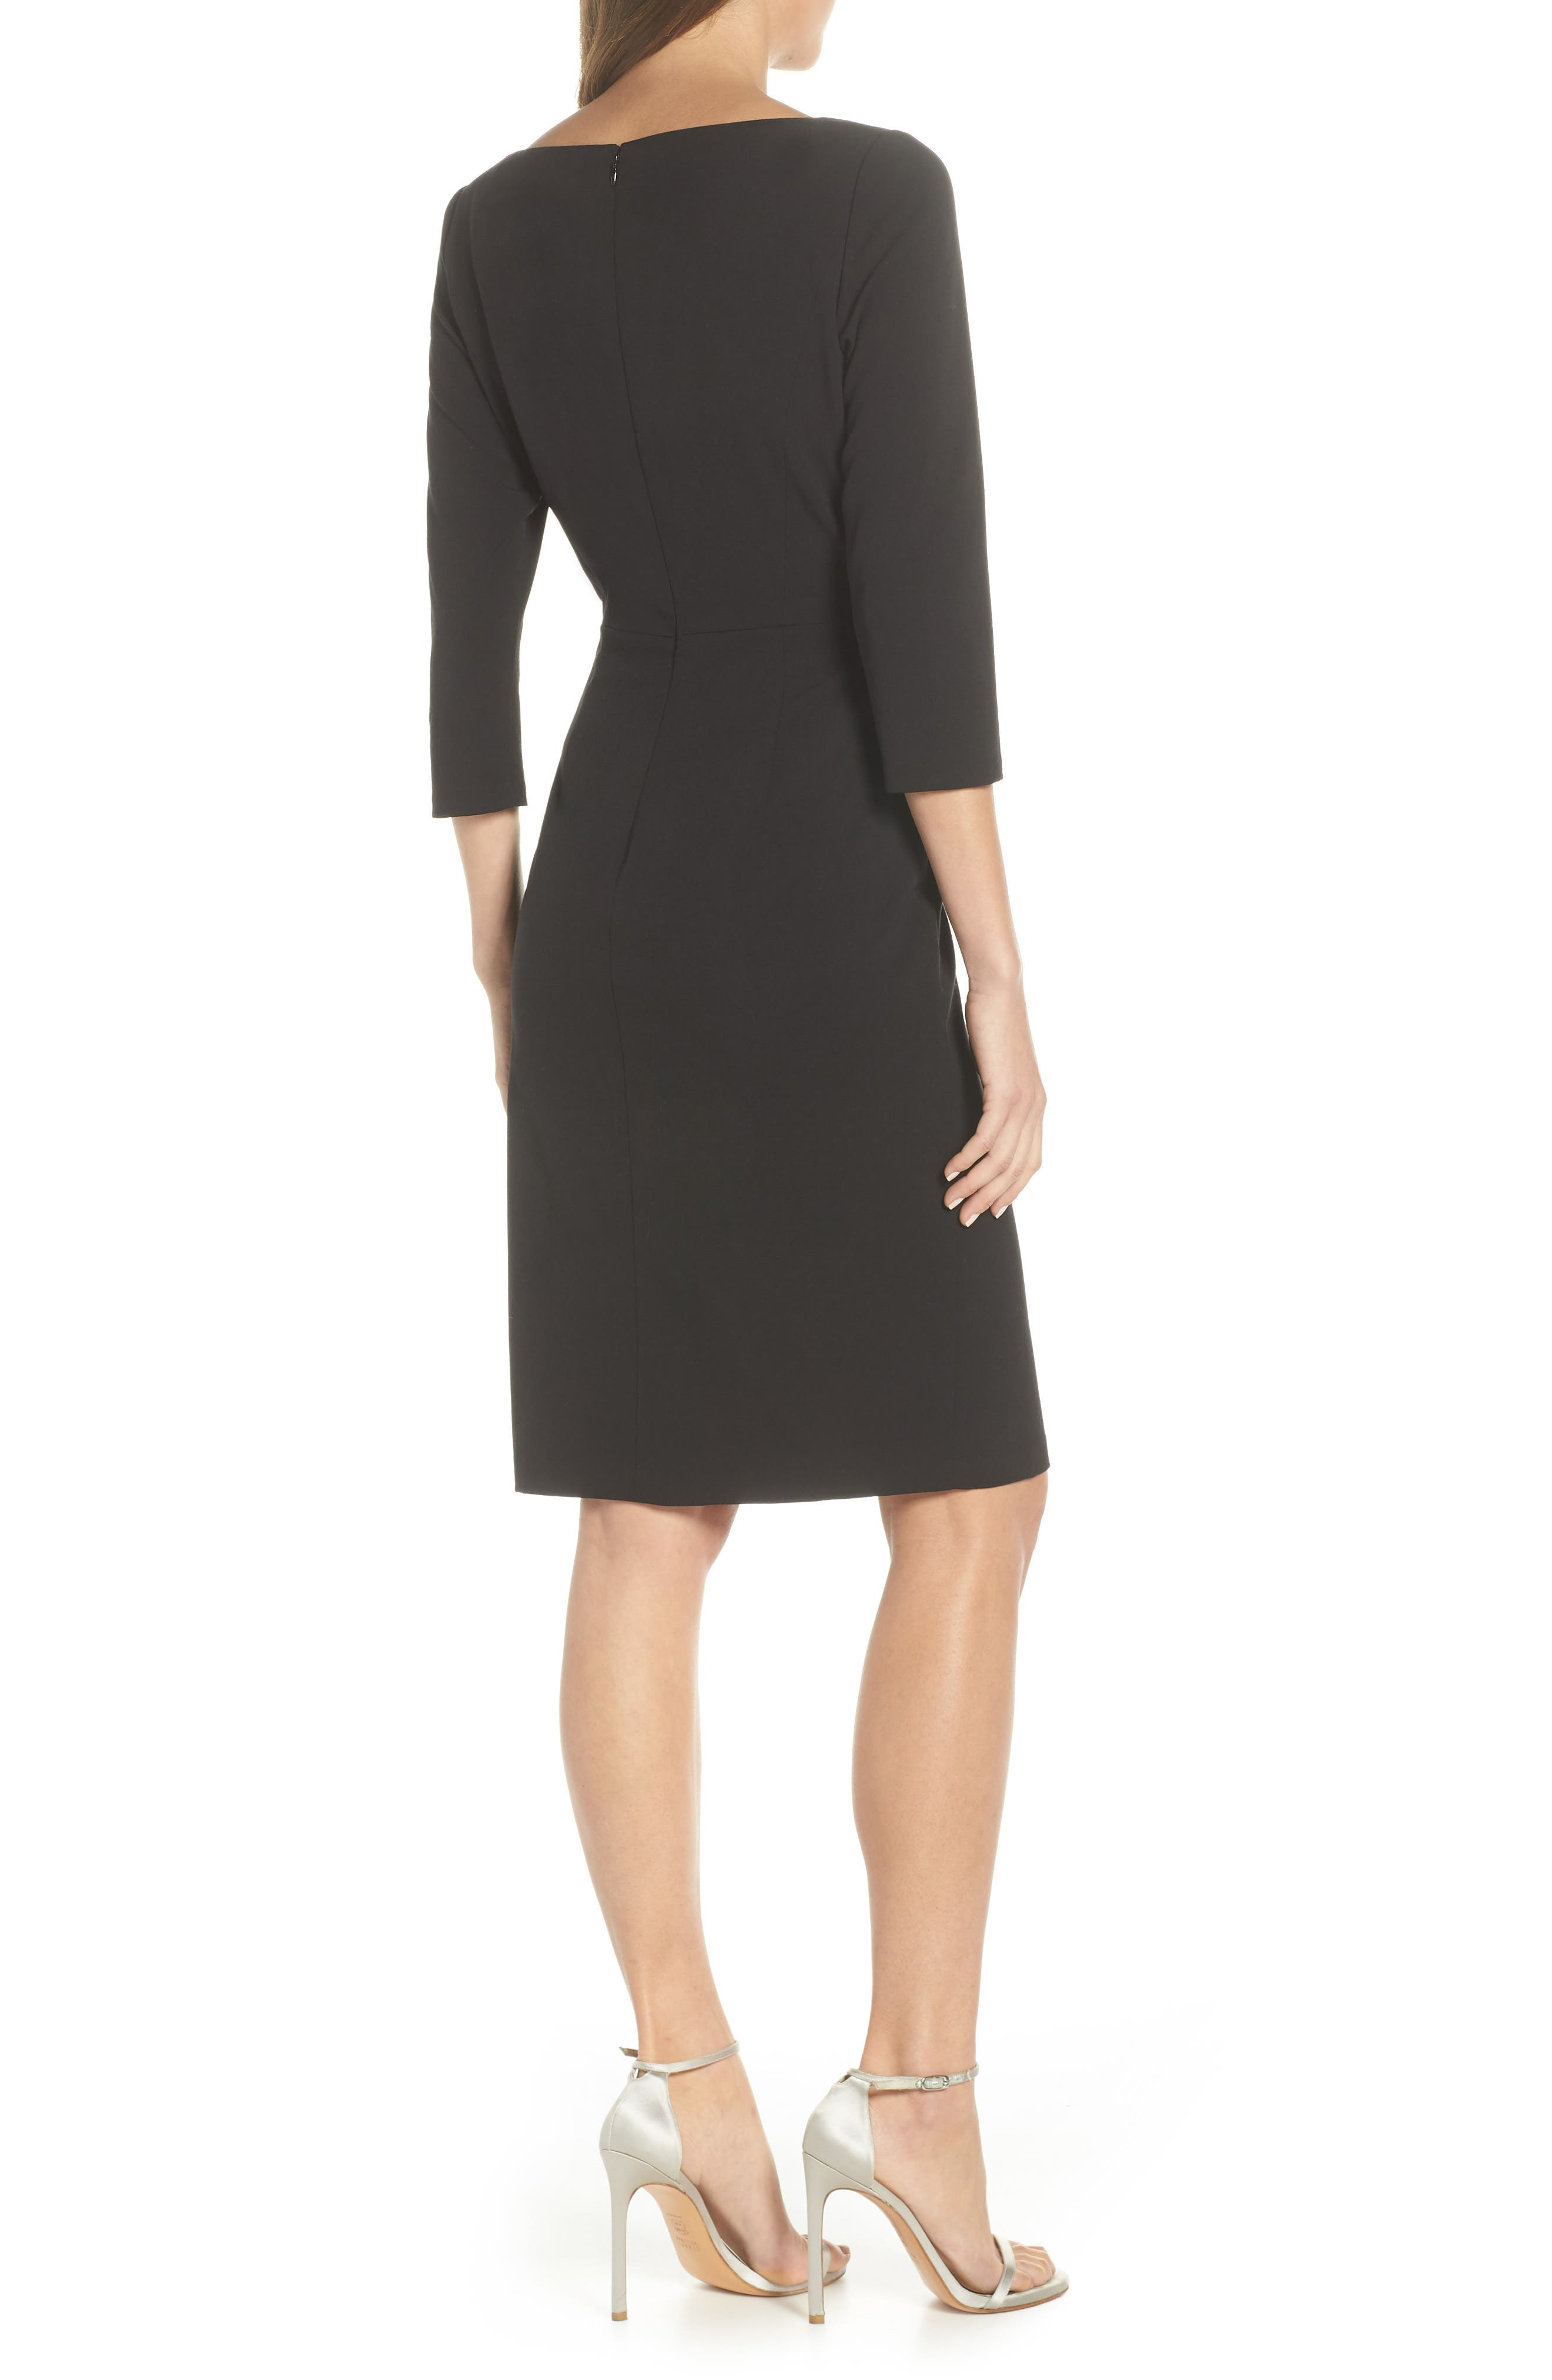 VINCE CAMUTO, Angled Ruffle Sheath Dress, Alternate thumbnail 2, color, BLACK